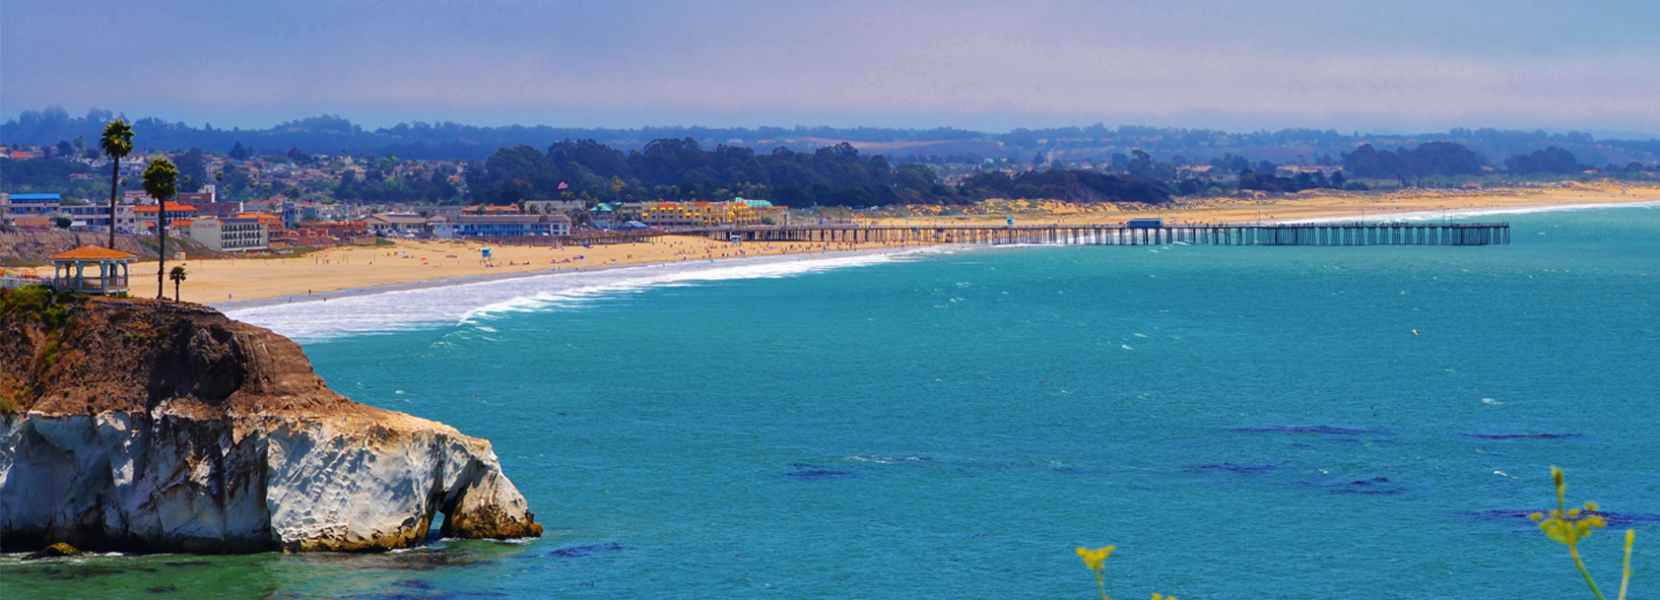 Arts & Culture in Pismo Beach | Theaters & Museums